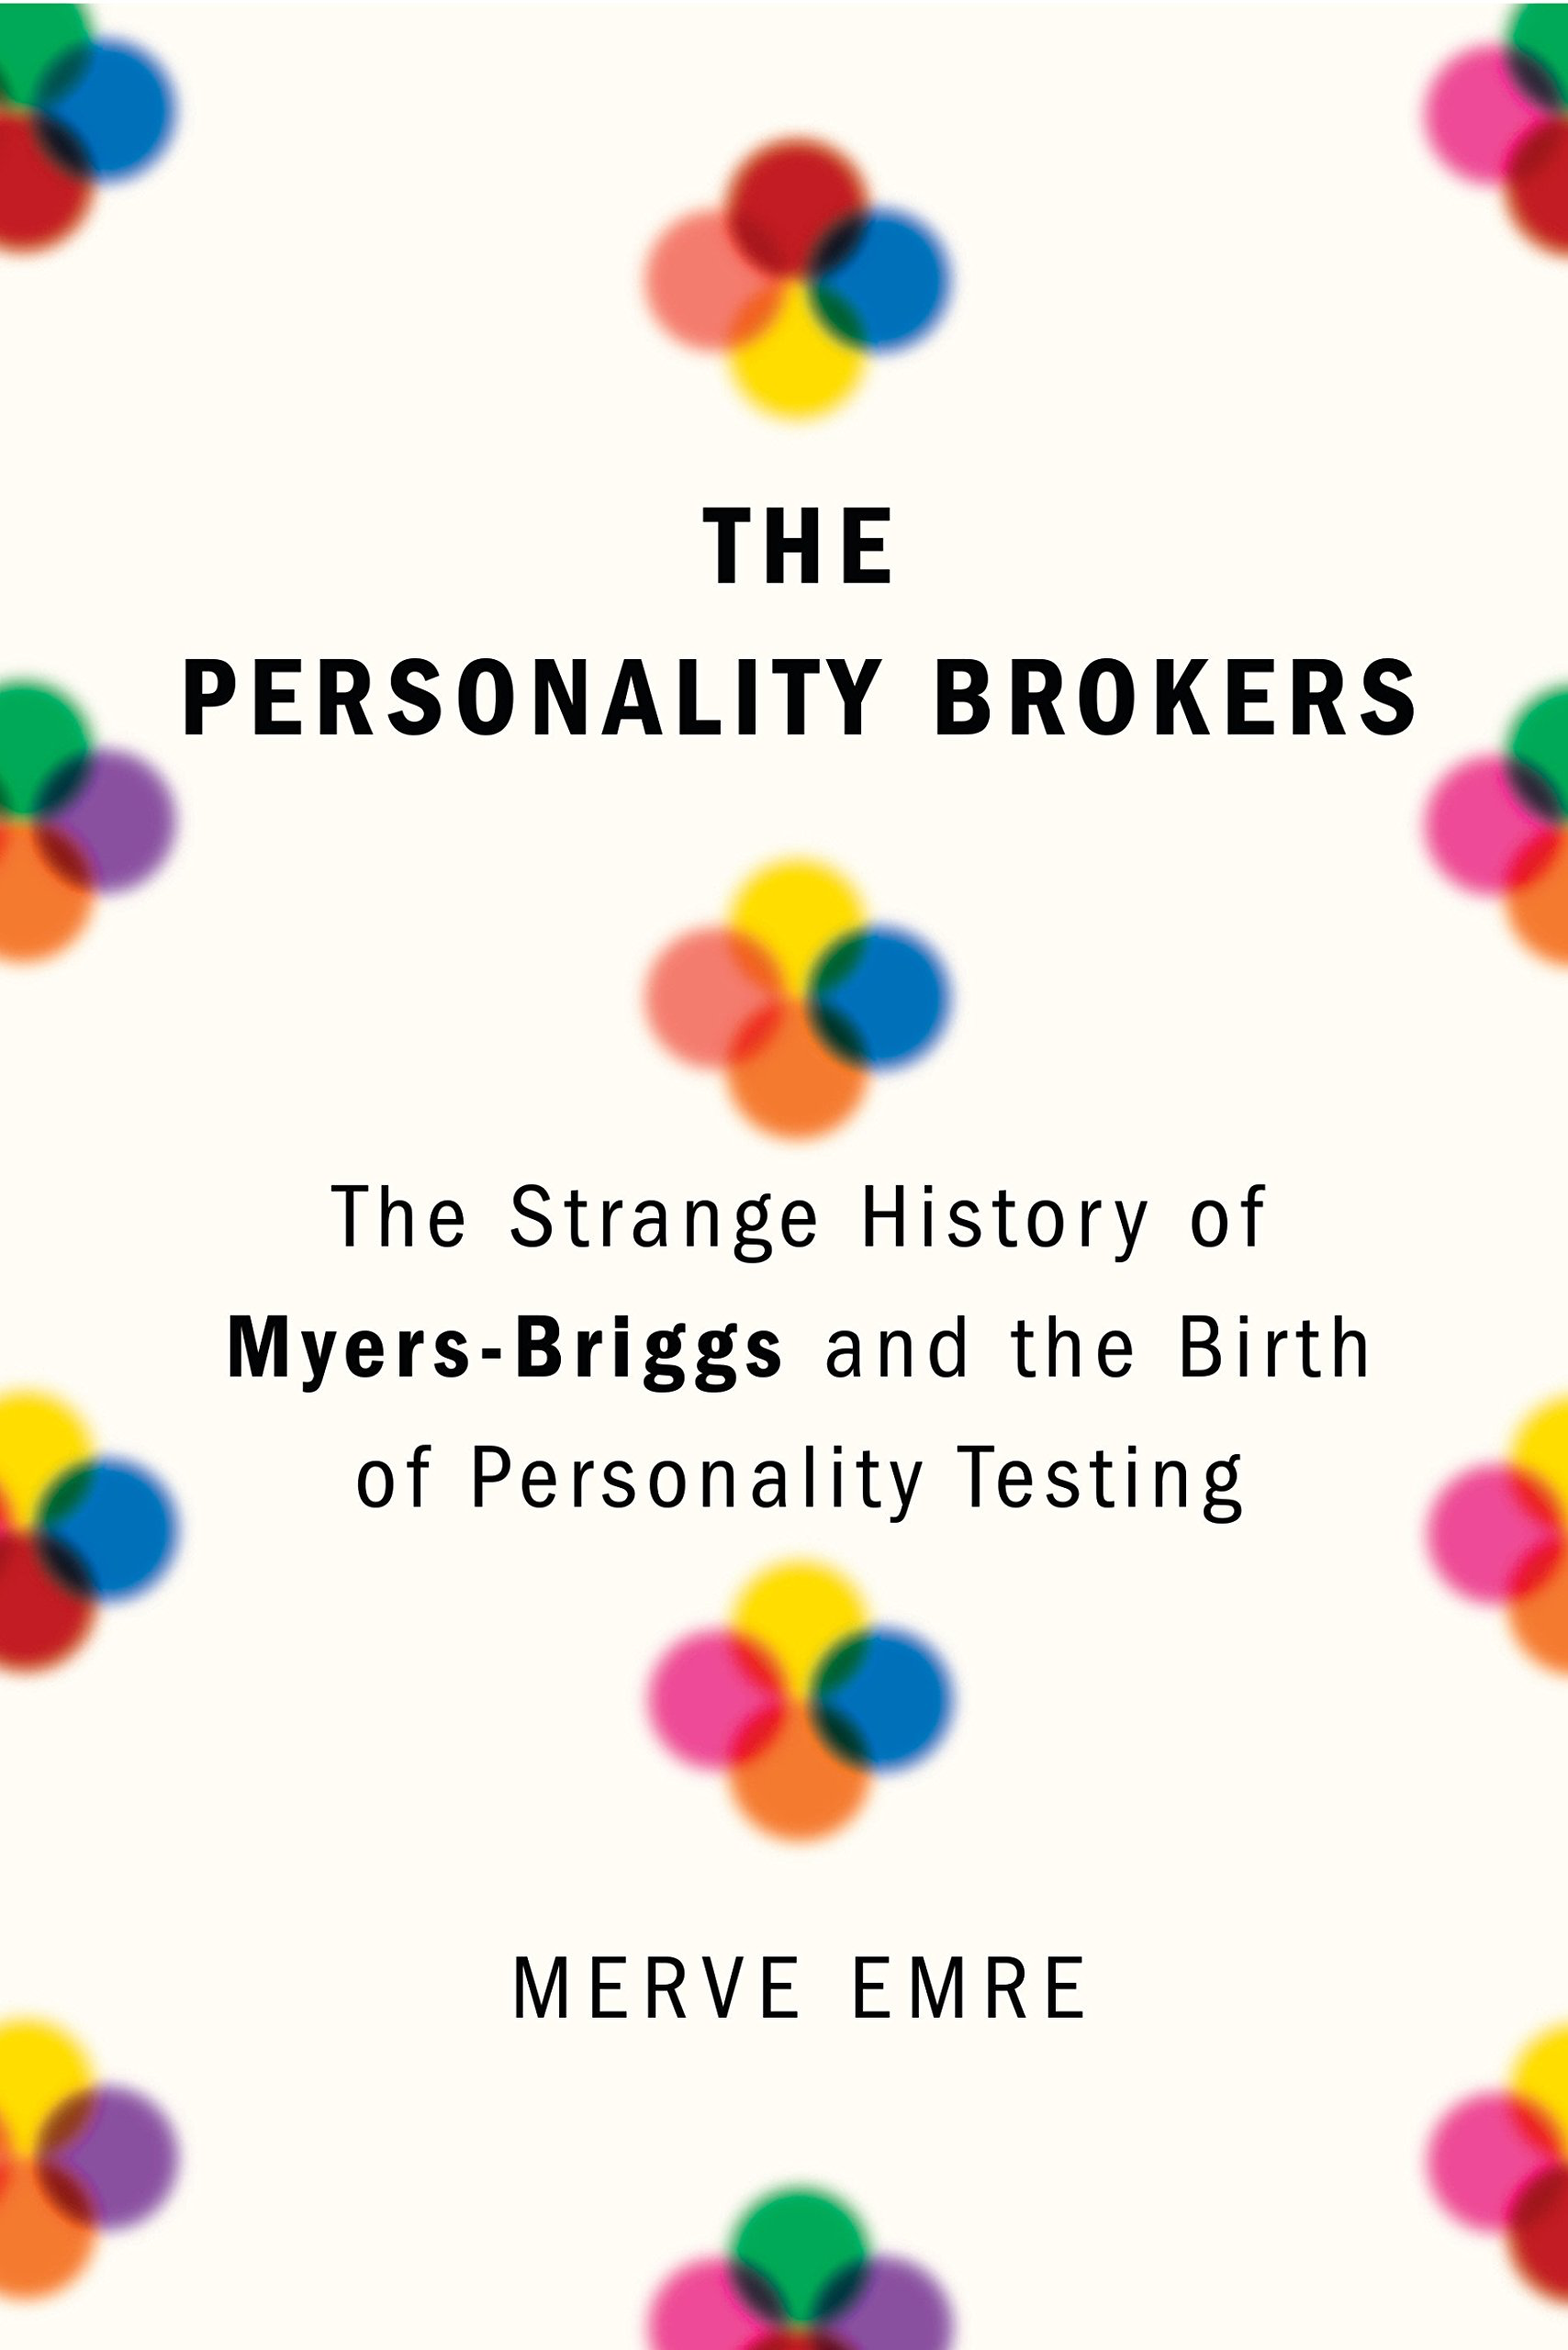 The Personality Brokers by Merve Emre - When Jen offered to write a book review on Personality Brokers, I was instantly intrigued. I've always been interested in Myers-Briggs tests and the different personalities as I find them to be much more accurate and in-depth than zodiac personalities. For the record, I'm an INTP and Jen is an INTJ. There's a reason why we're friends.